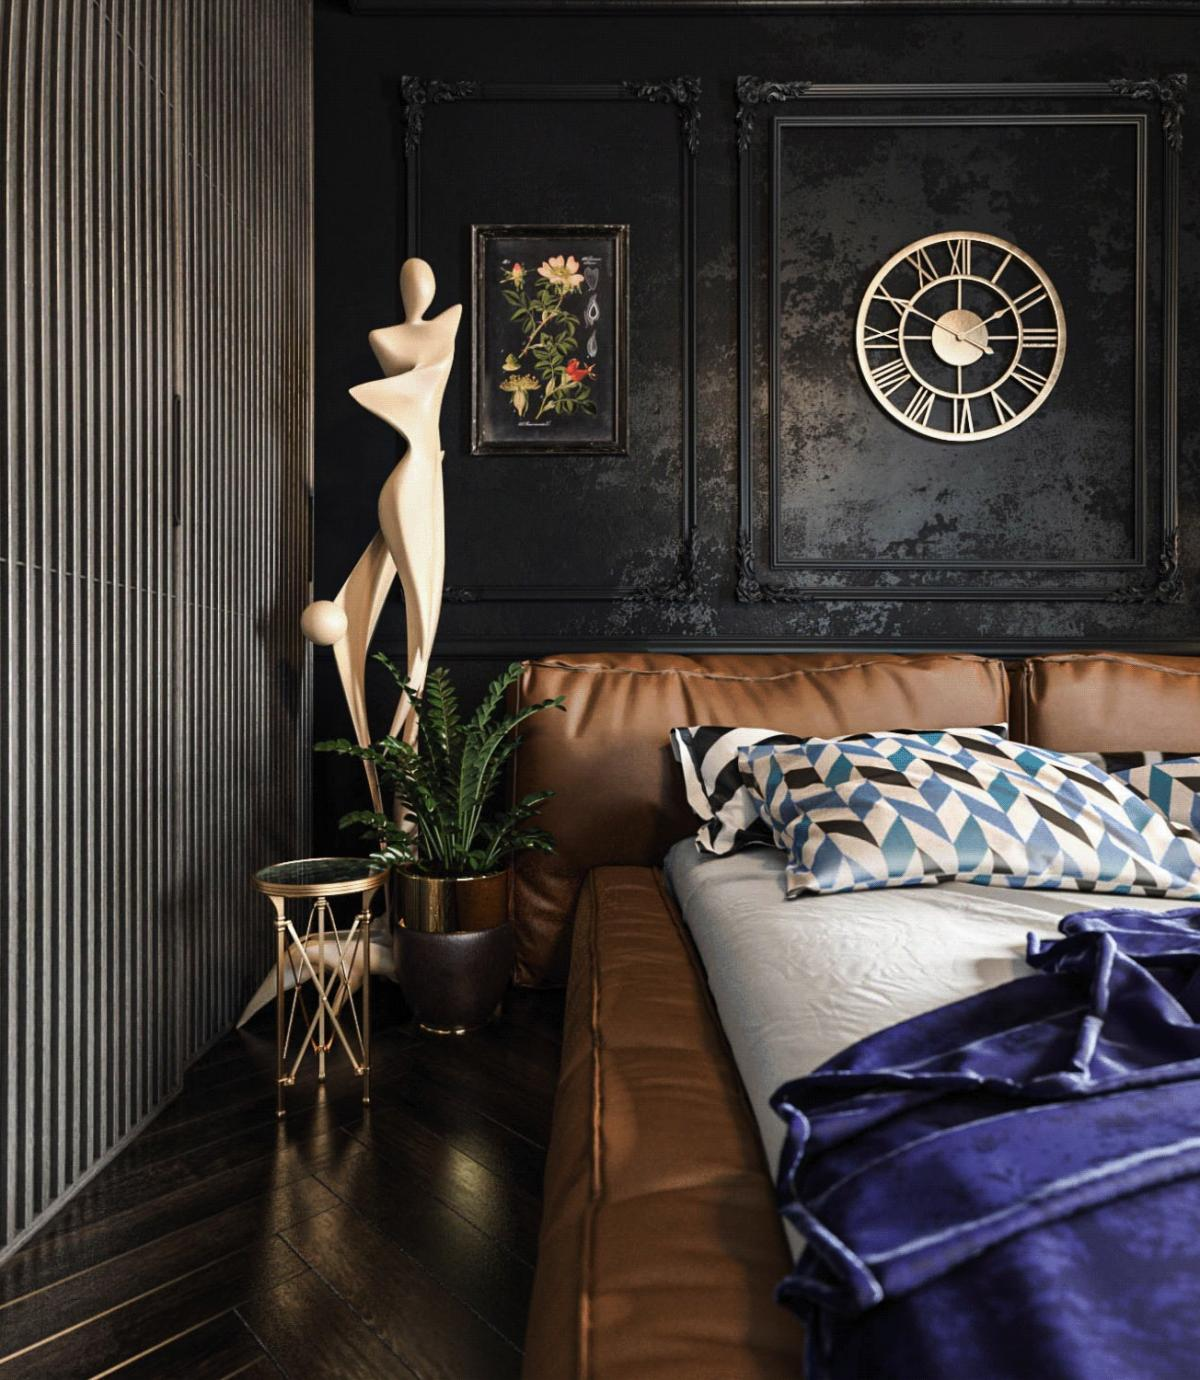 A bit more about dark bedroom interiors